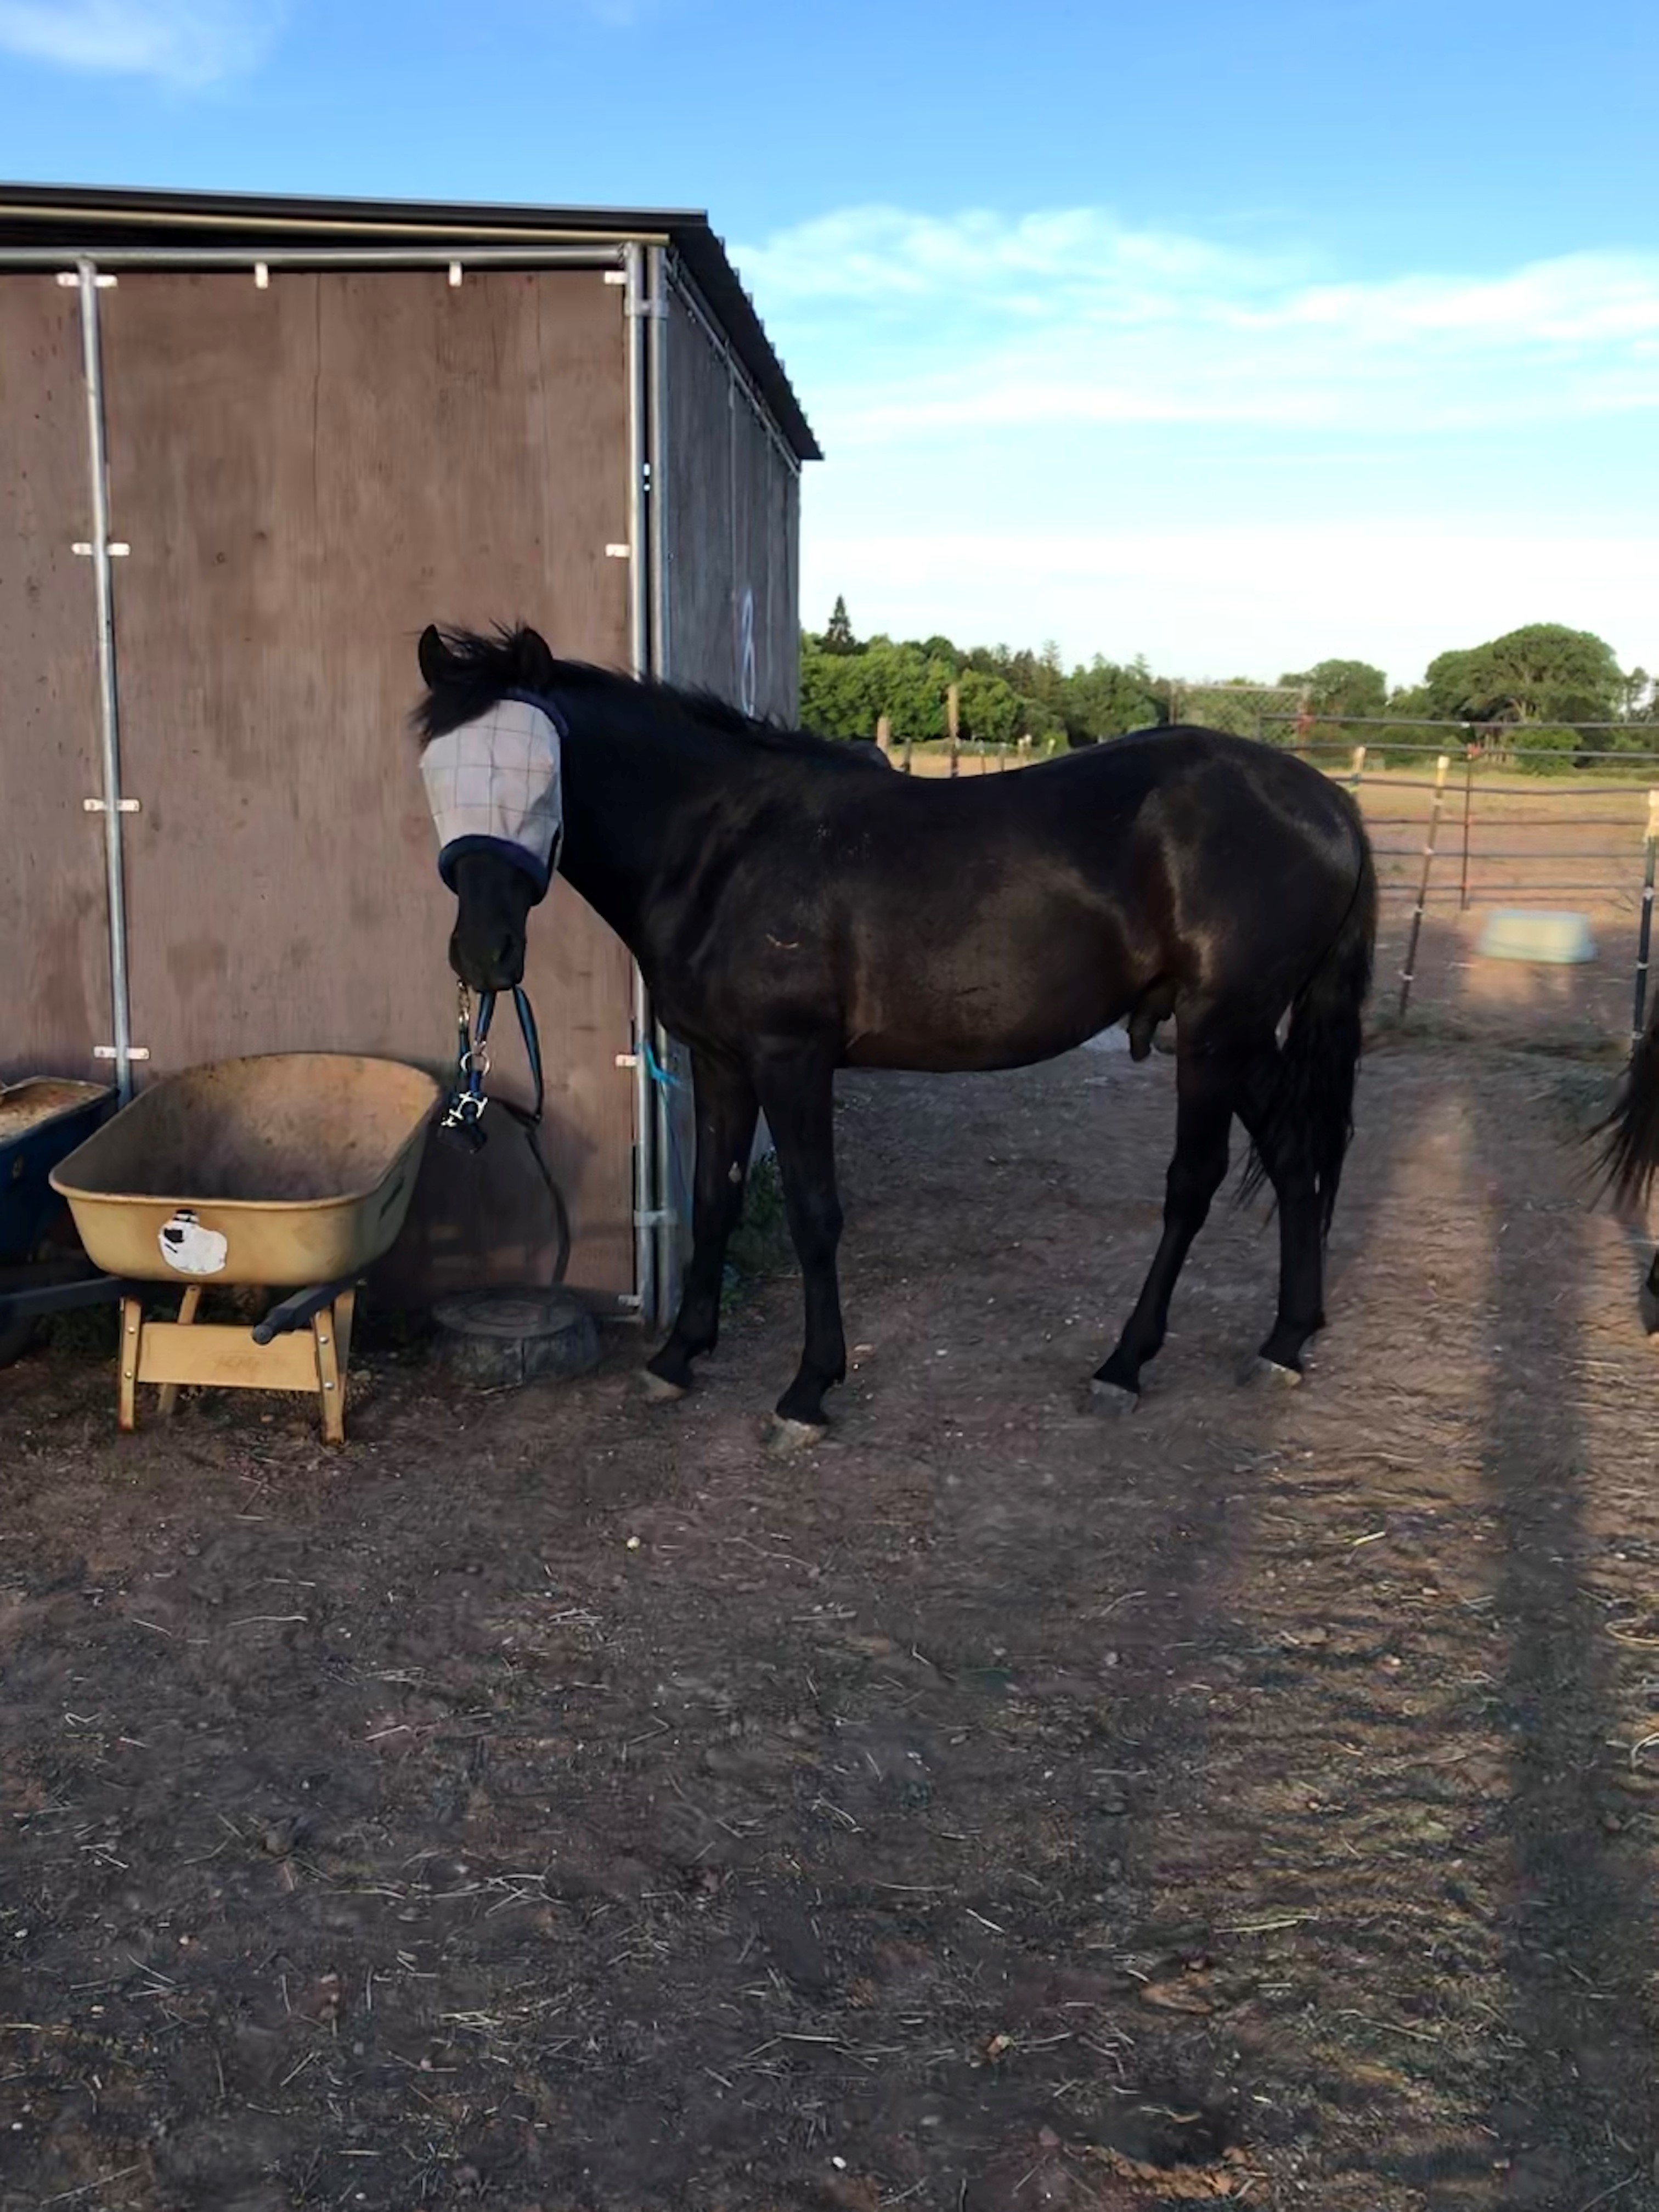 Storm carrying halter